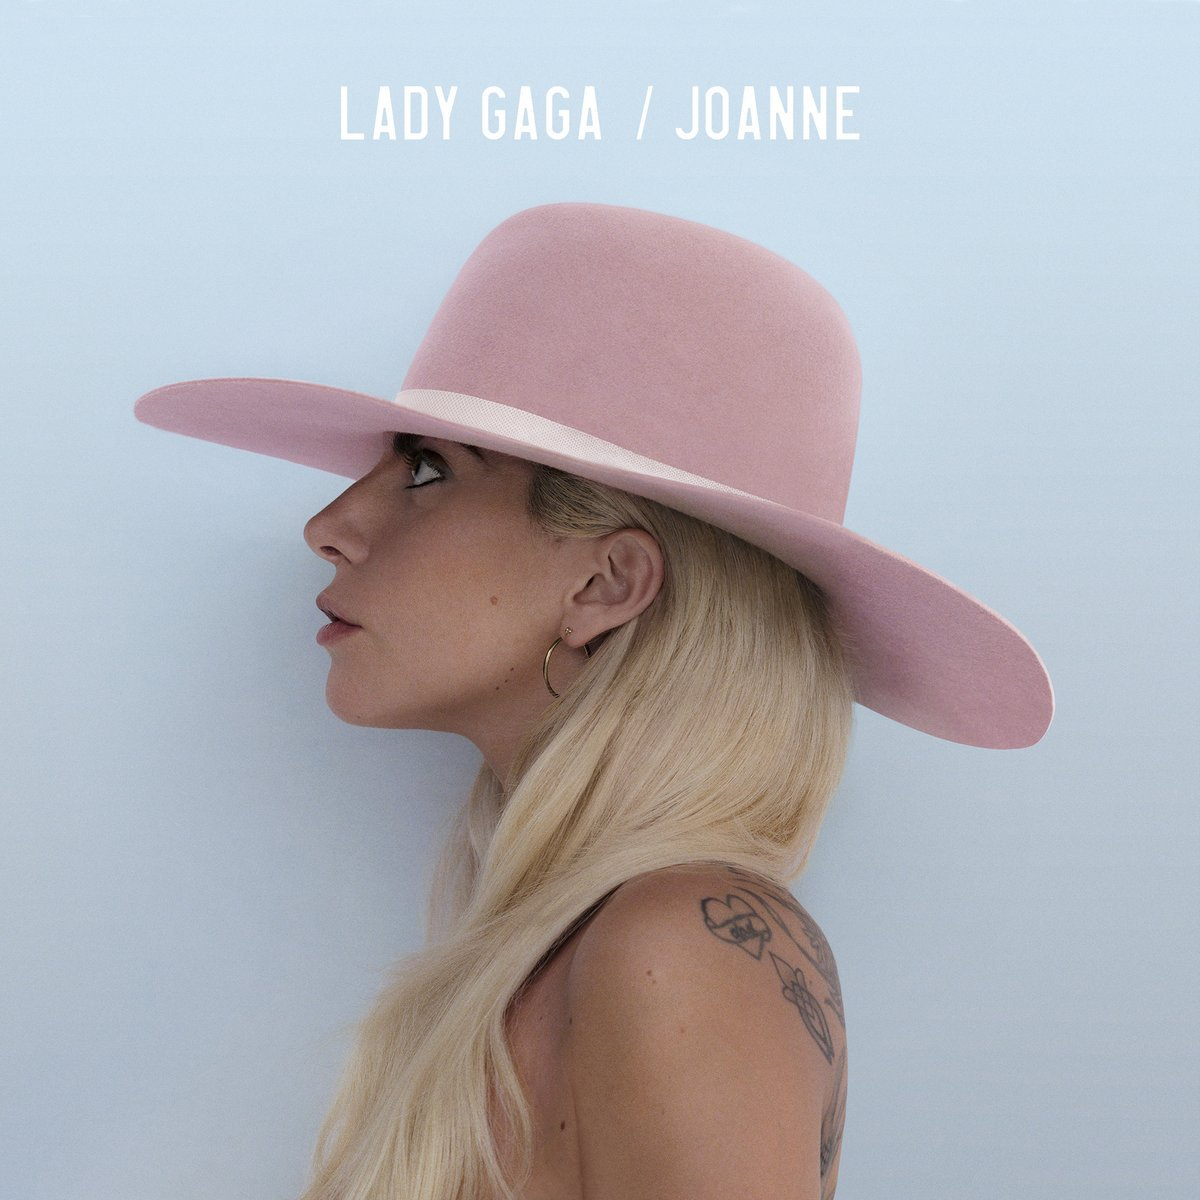 Joanne – Lady Gaga Album